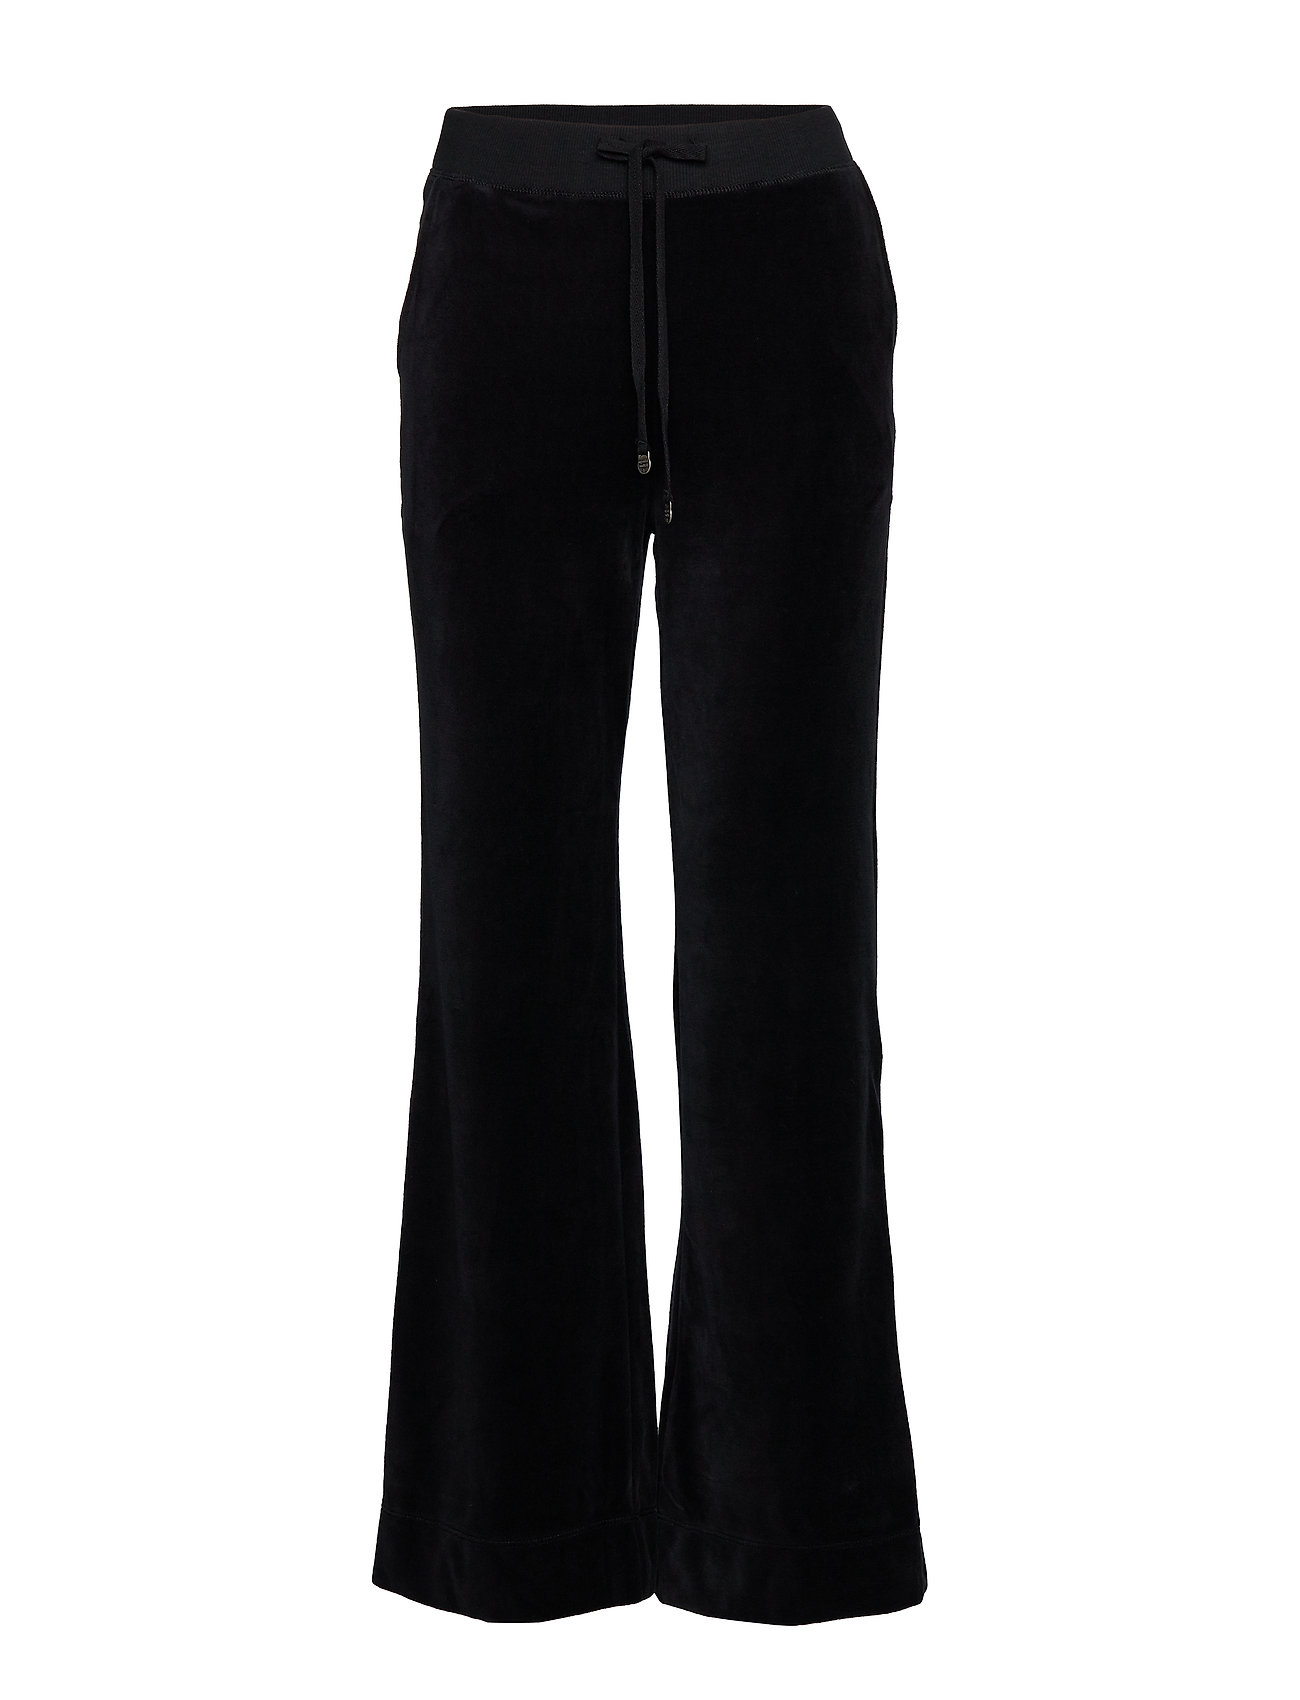 ODD MOLLY Hygge Pant - ALMOST BLACK